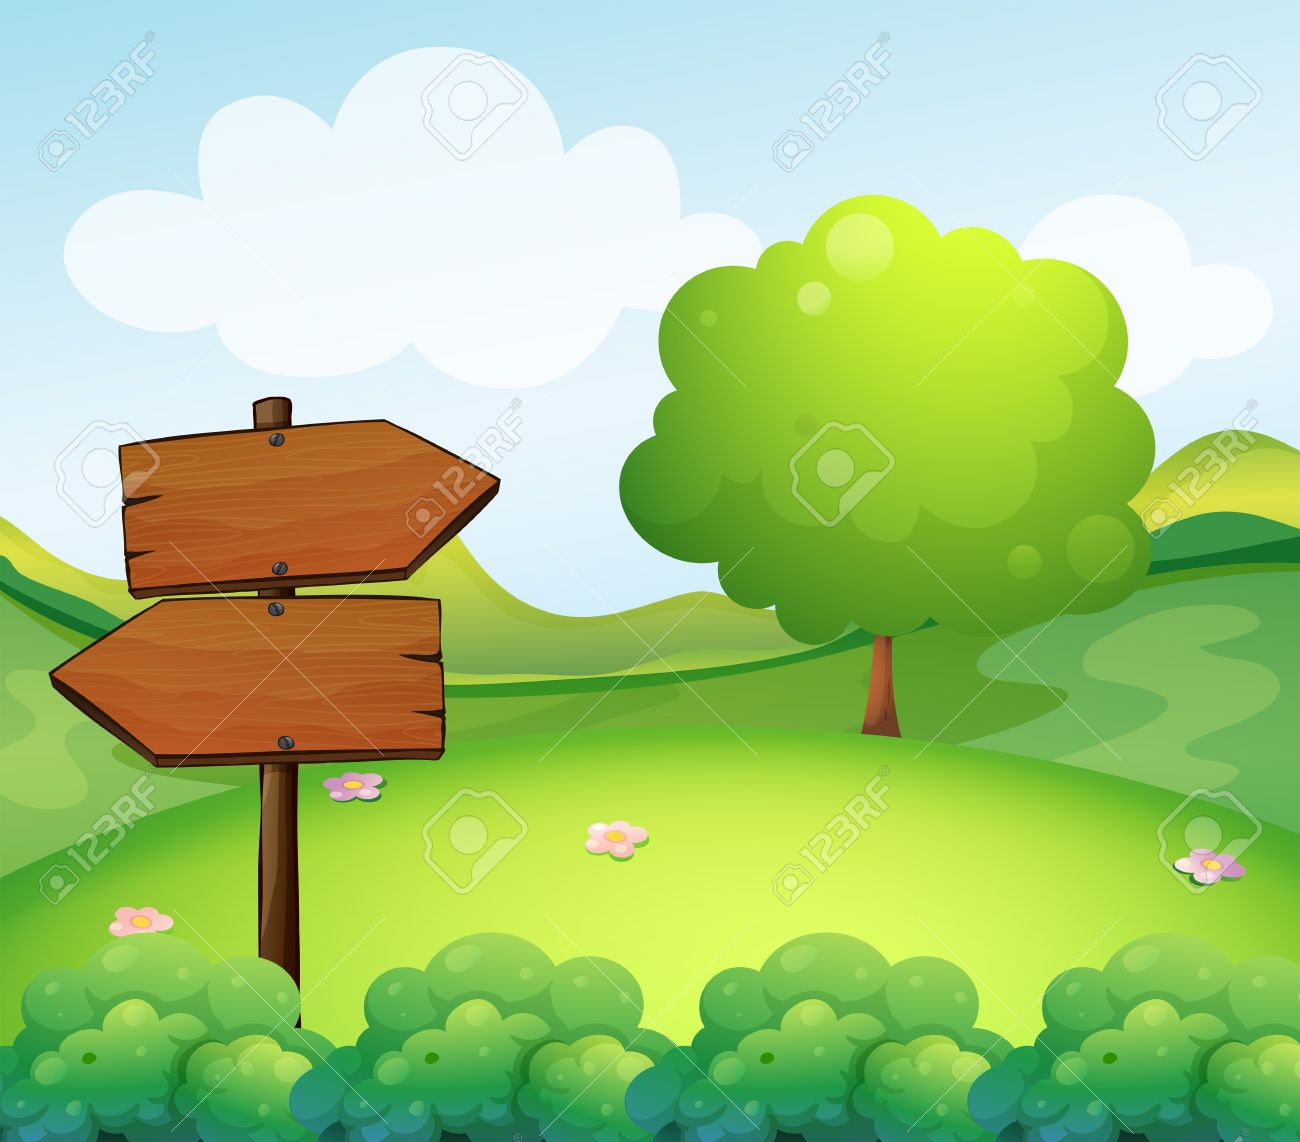 Illustration Of A Wooden Arrow Board In The Hill Royalty Free.